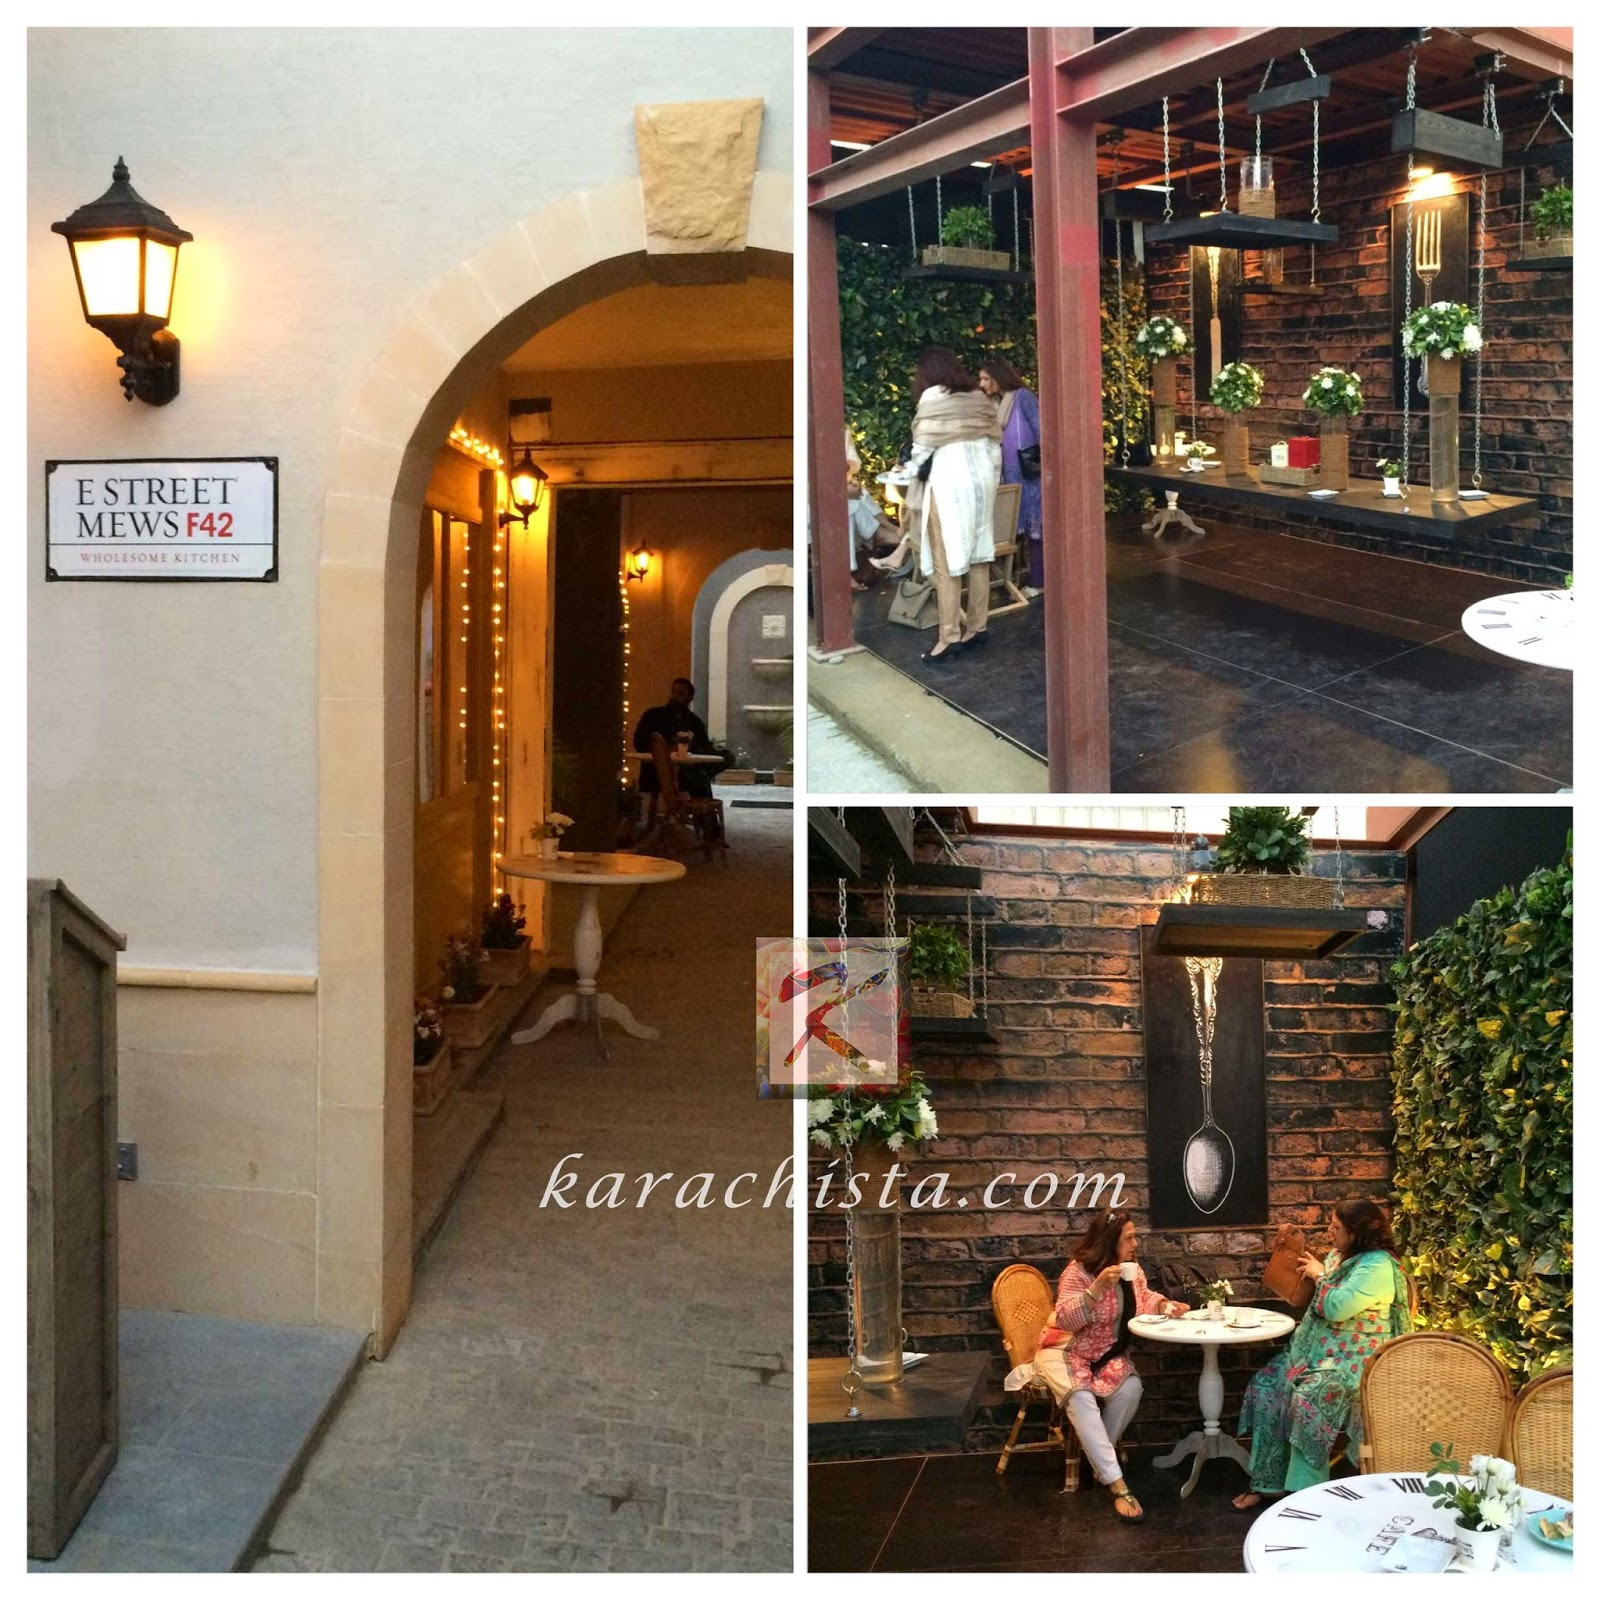 Mews - Karachi's newest upscale cafe